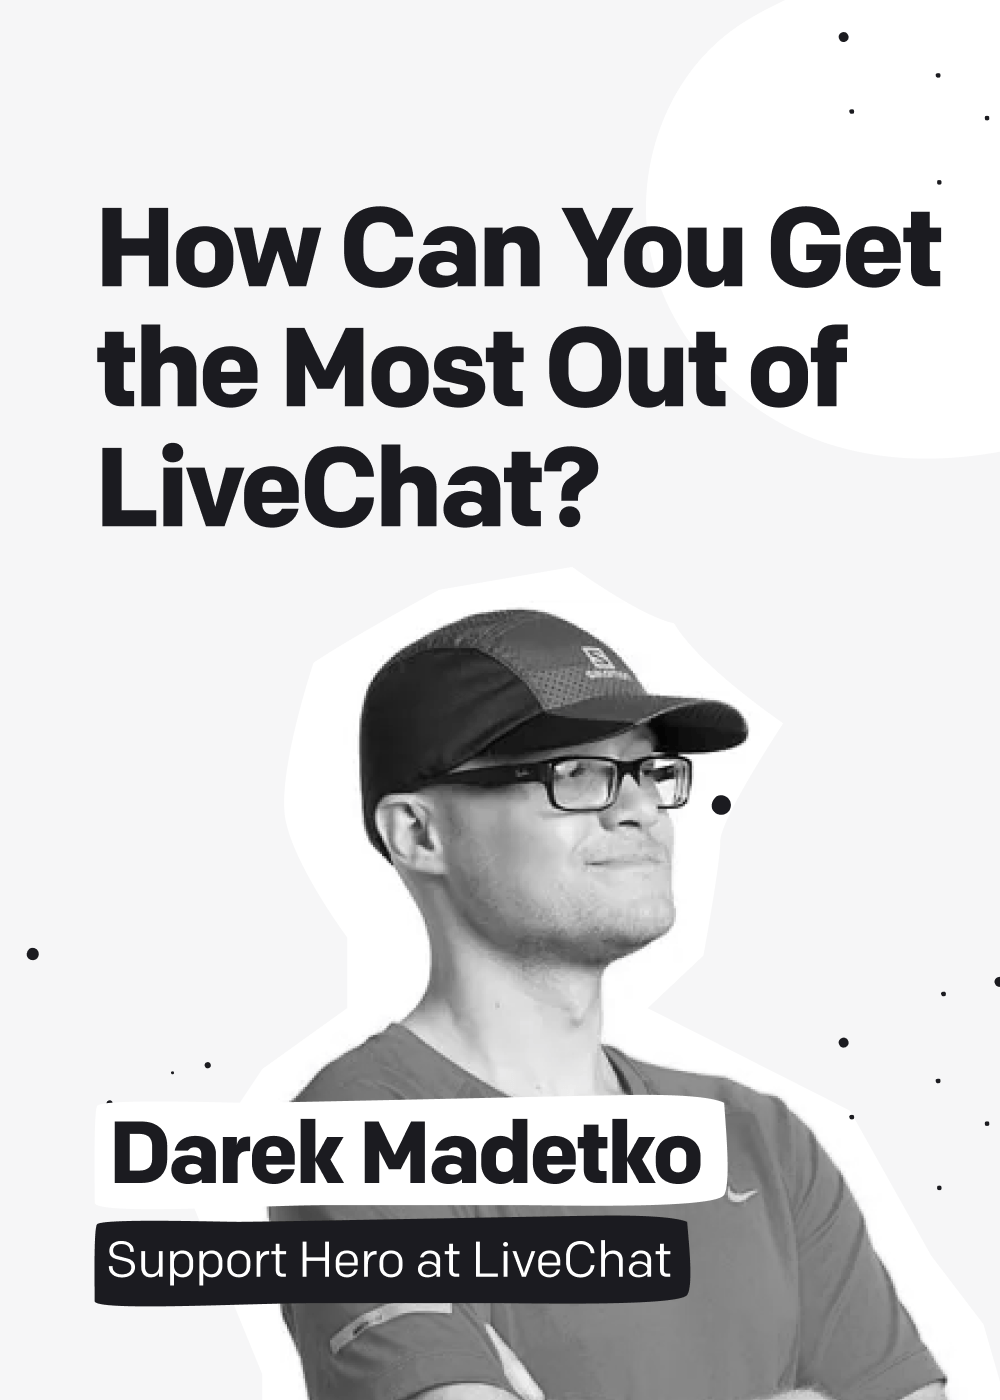 How Can You Get the Most Out of LiveChat?